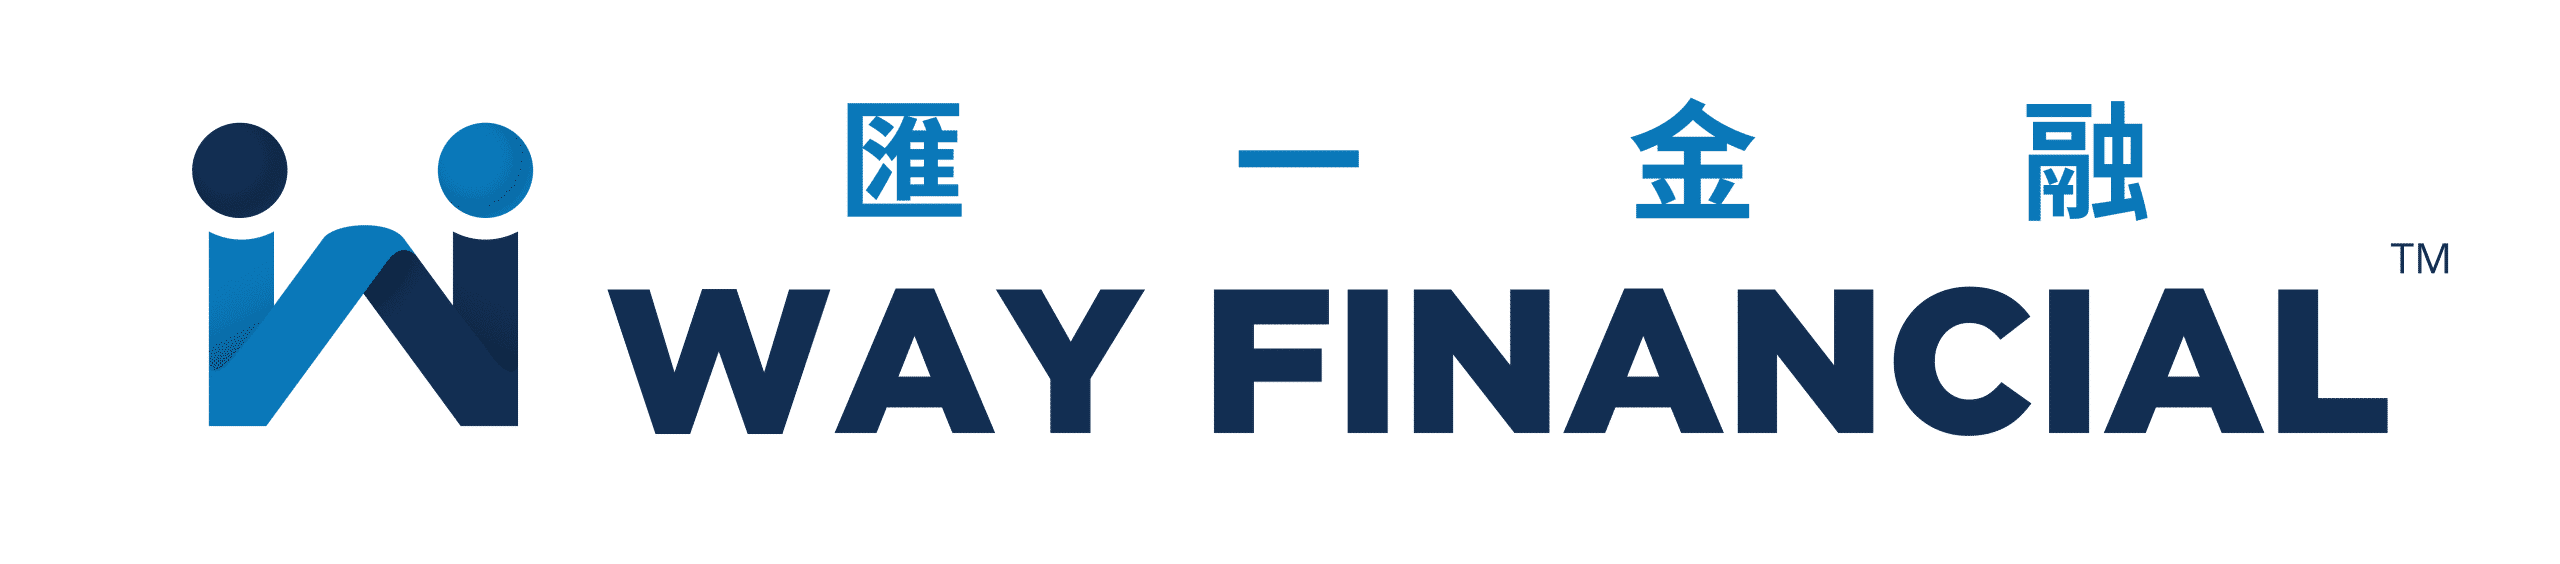 Way Financial Inc.